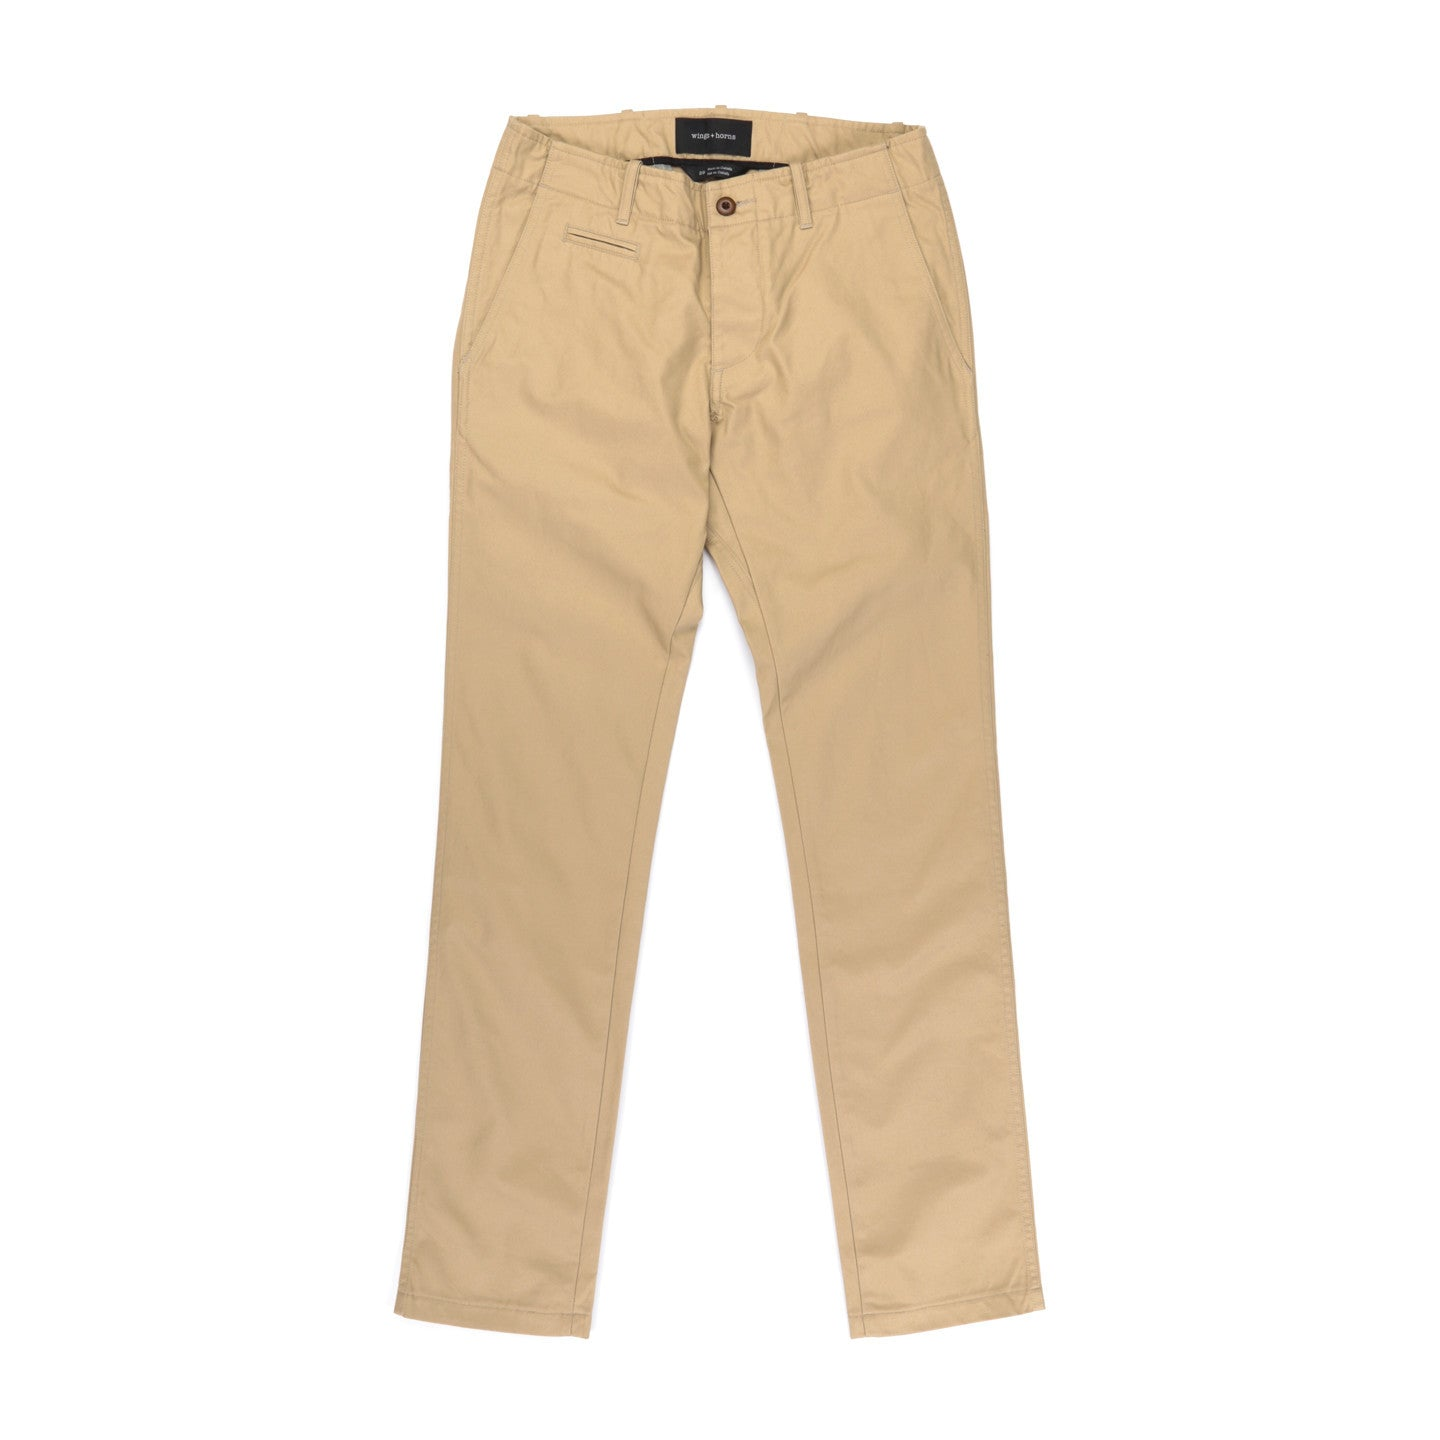 WINGS + HORNS CONVOY TWILL WESTPOINT CHINO KHAKI